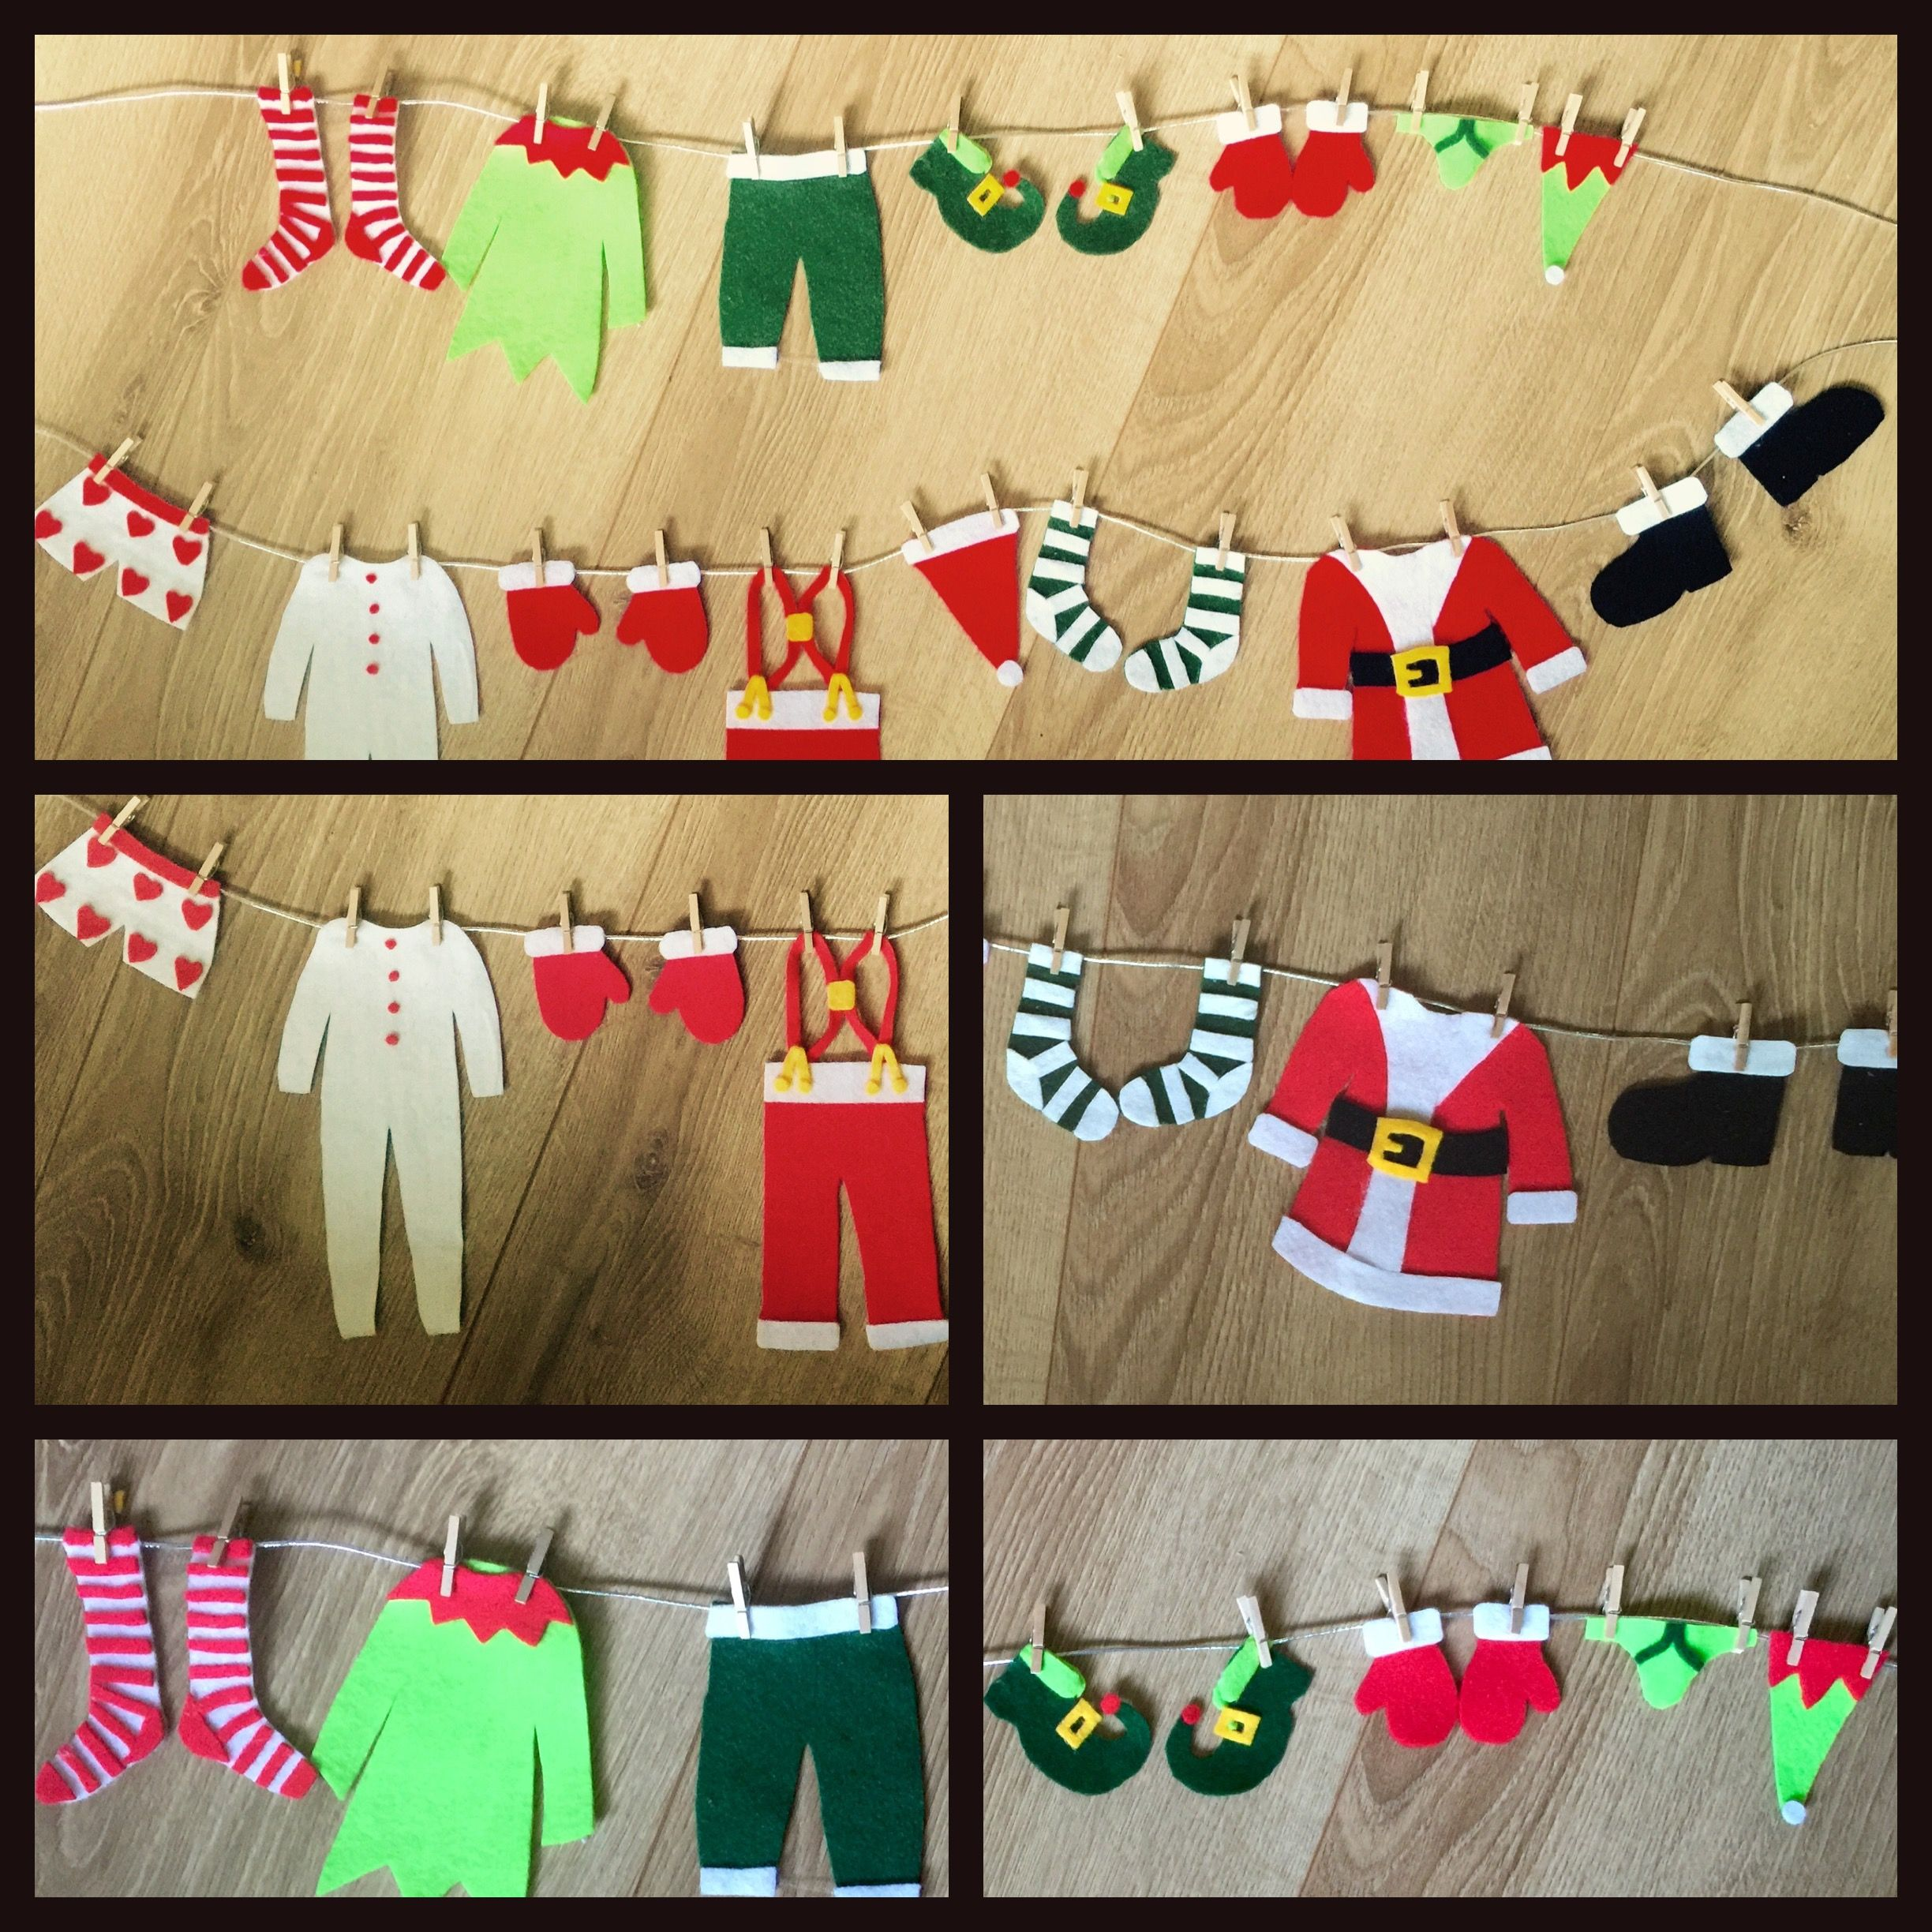 How to make a christmas elf decoration - Santa And Elf Washing Lines Christmas Decorations Family Christmaschristmas Diychristmas